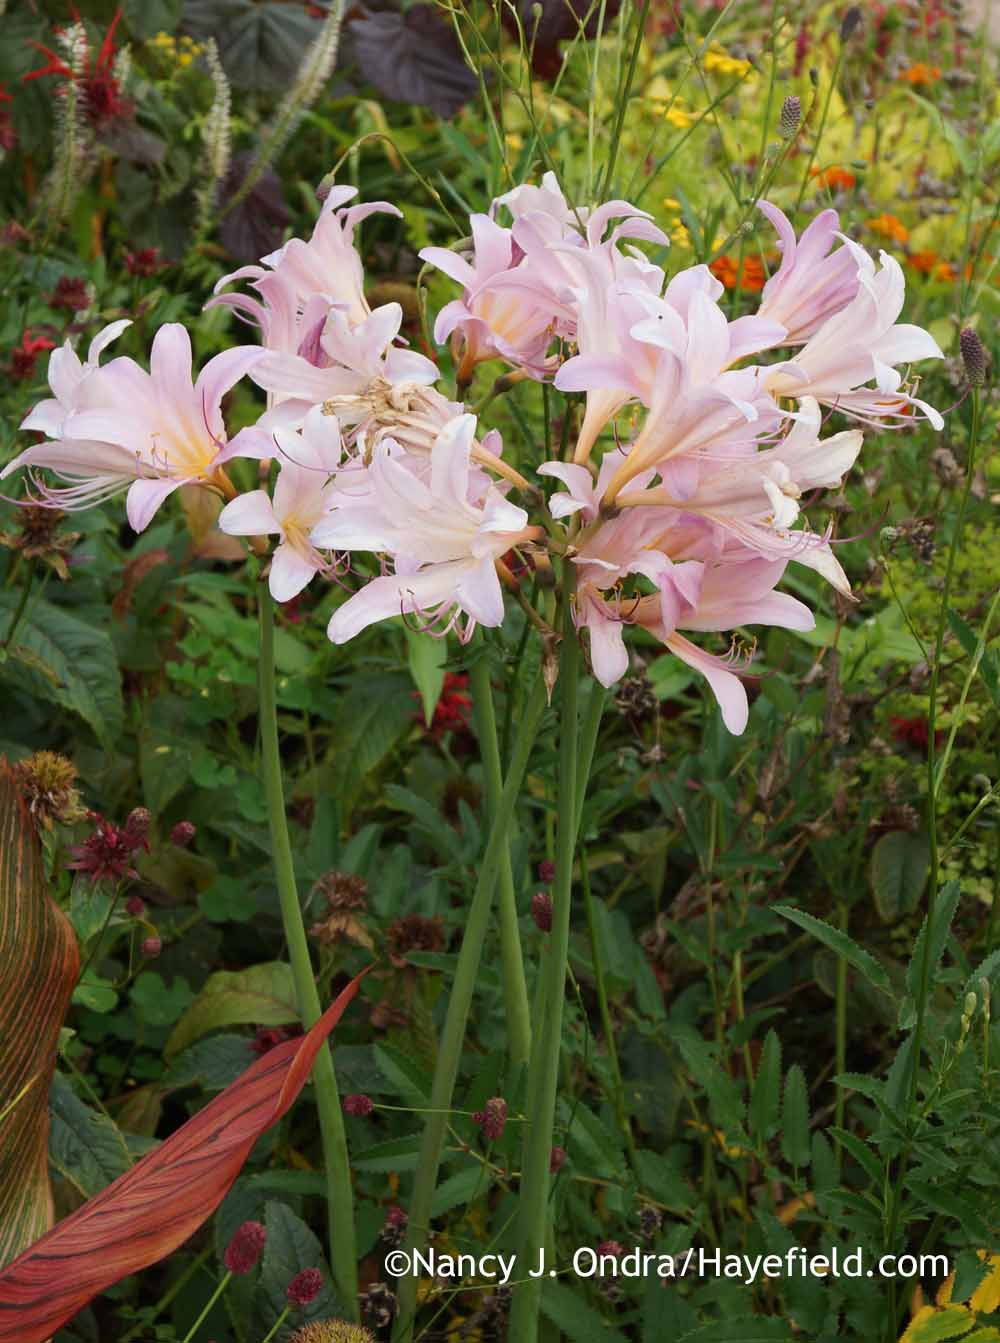 Matchmaking with bulbs part 2 hayefield the lilys flowering stalks in turn can easily shoot up through the tanna izmirmasajfo Image collections